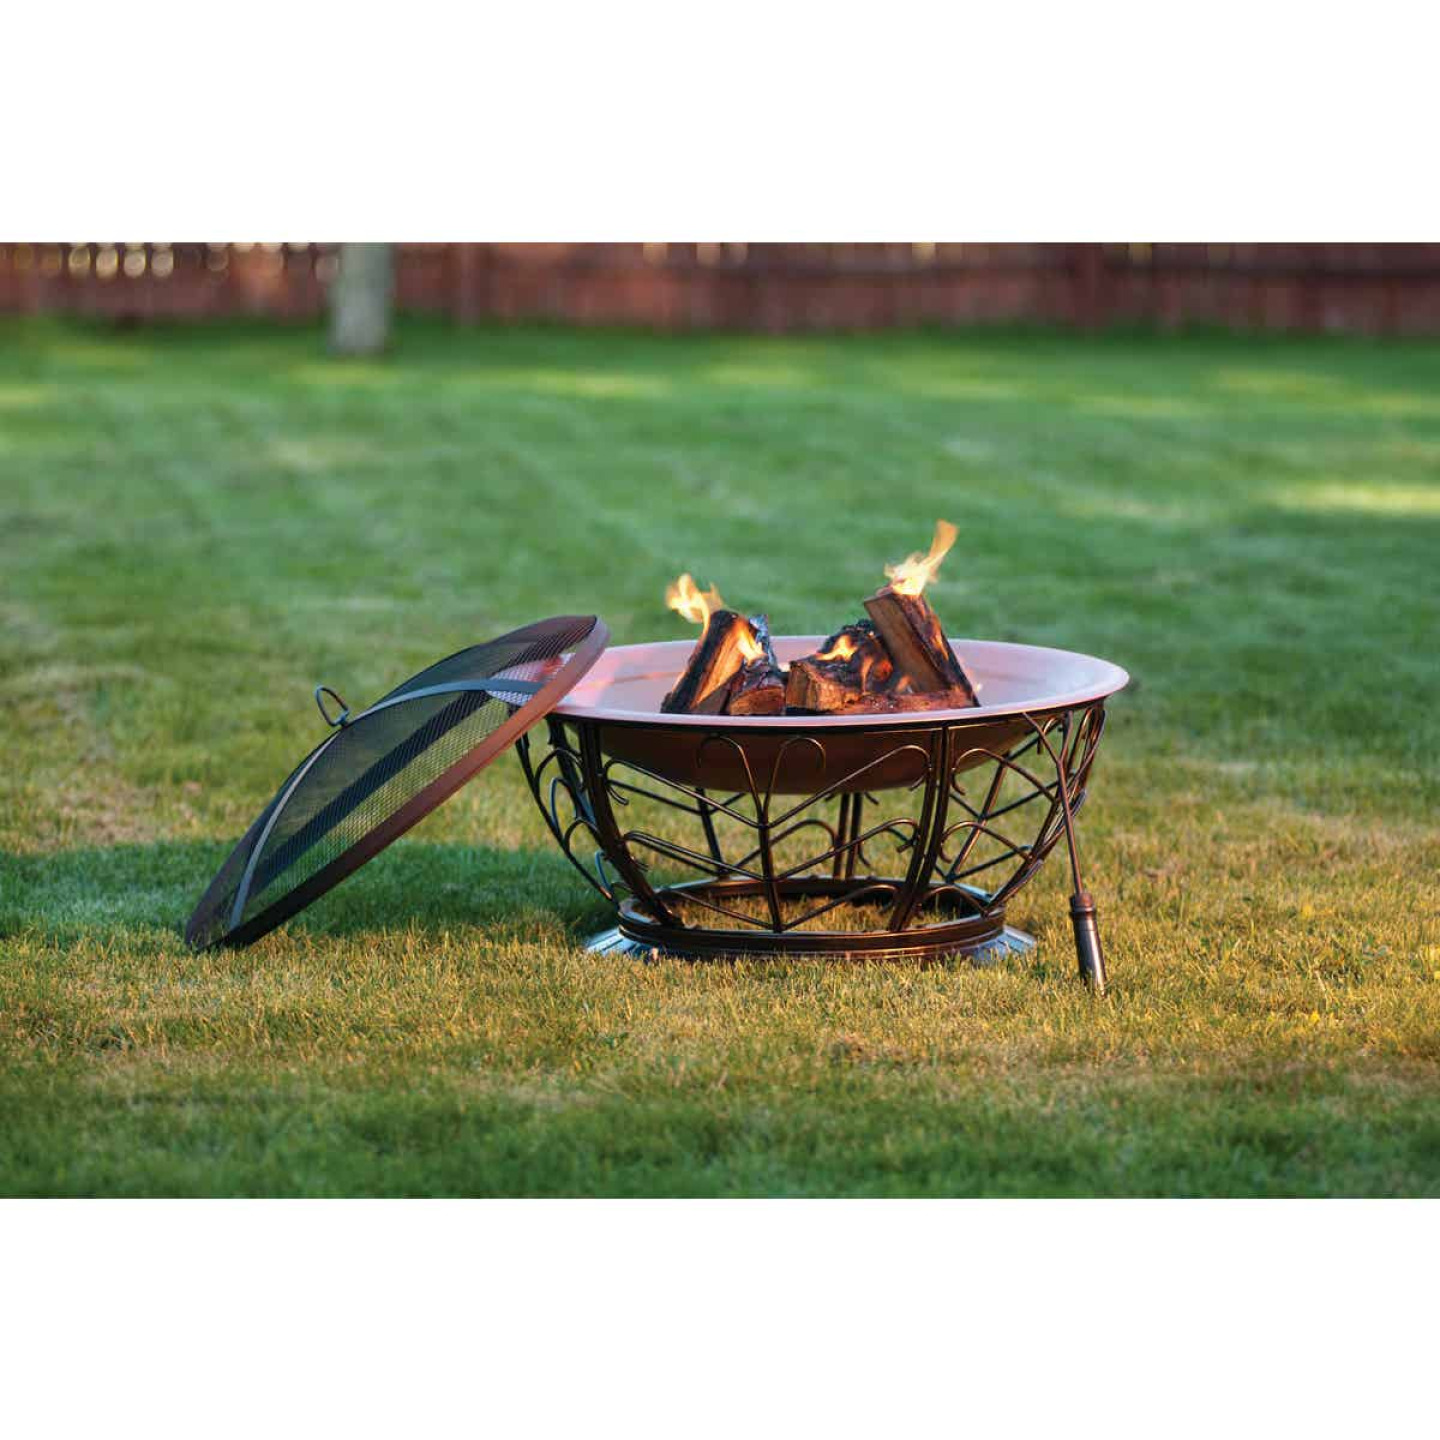 Outdoor Expressions 30 In. Coppertone Round Steel Fire Pit Image 6